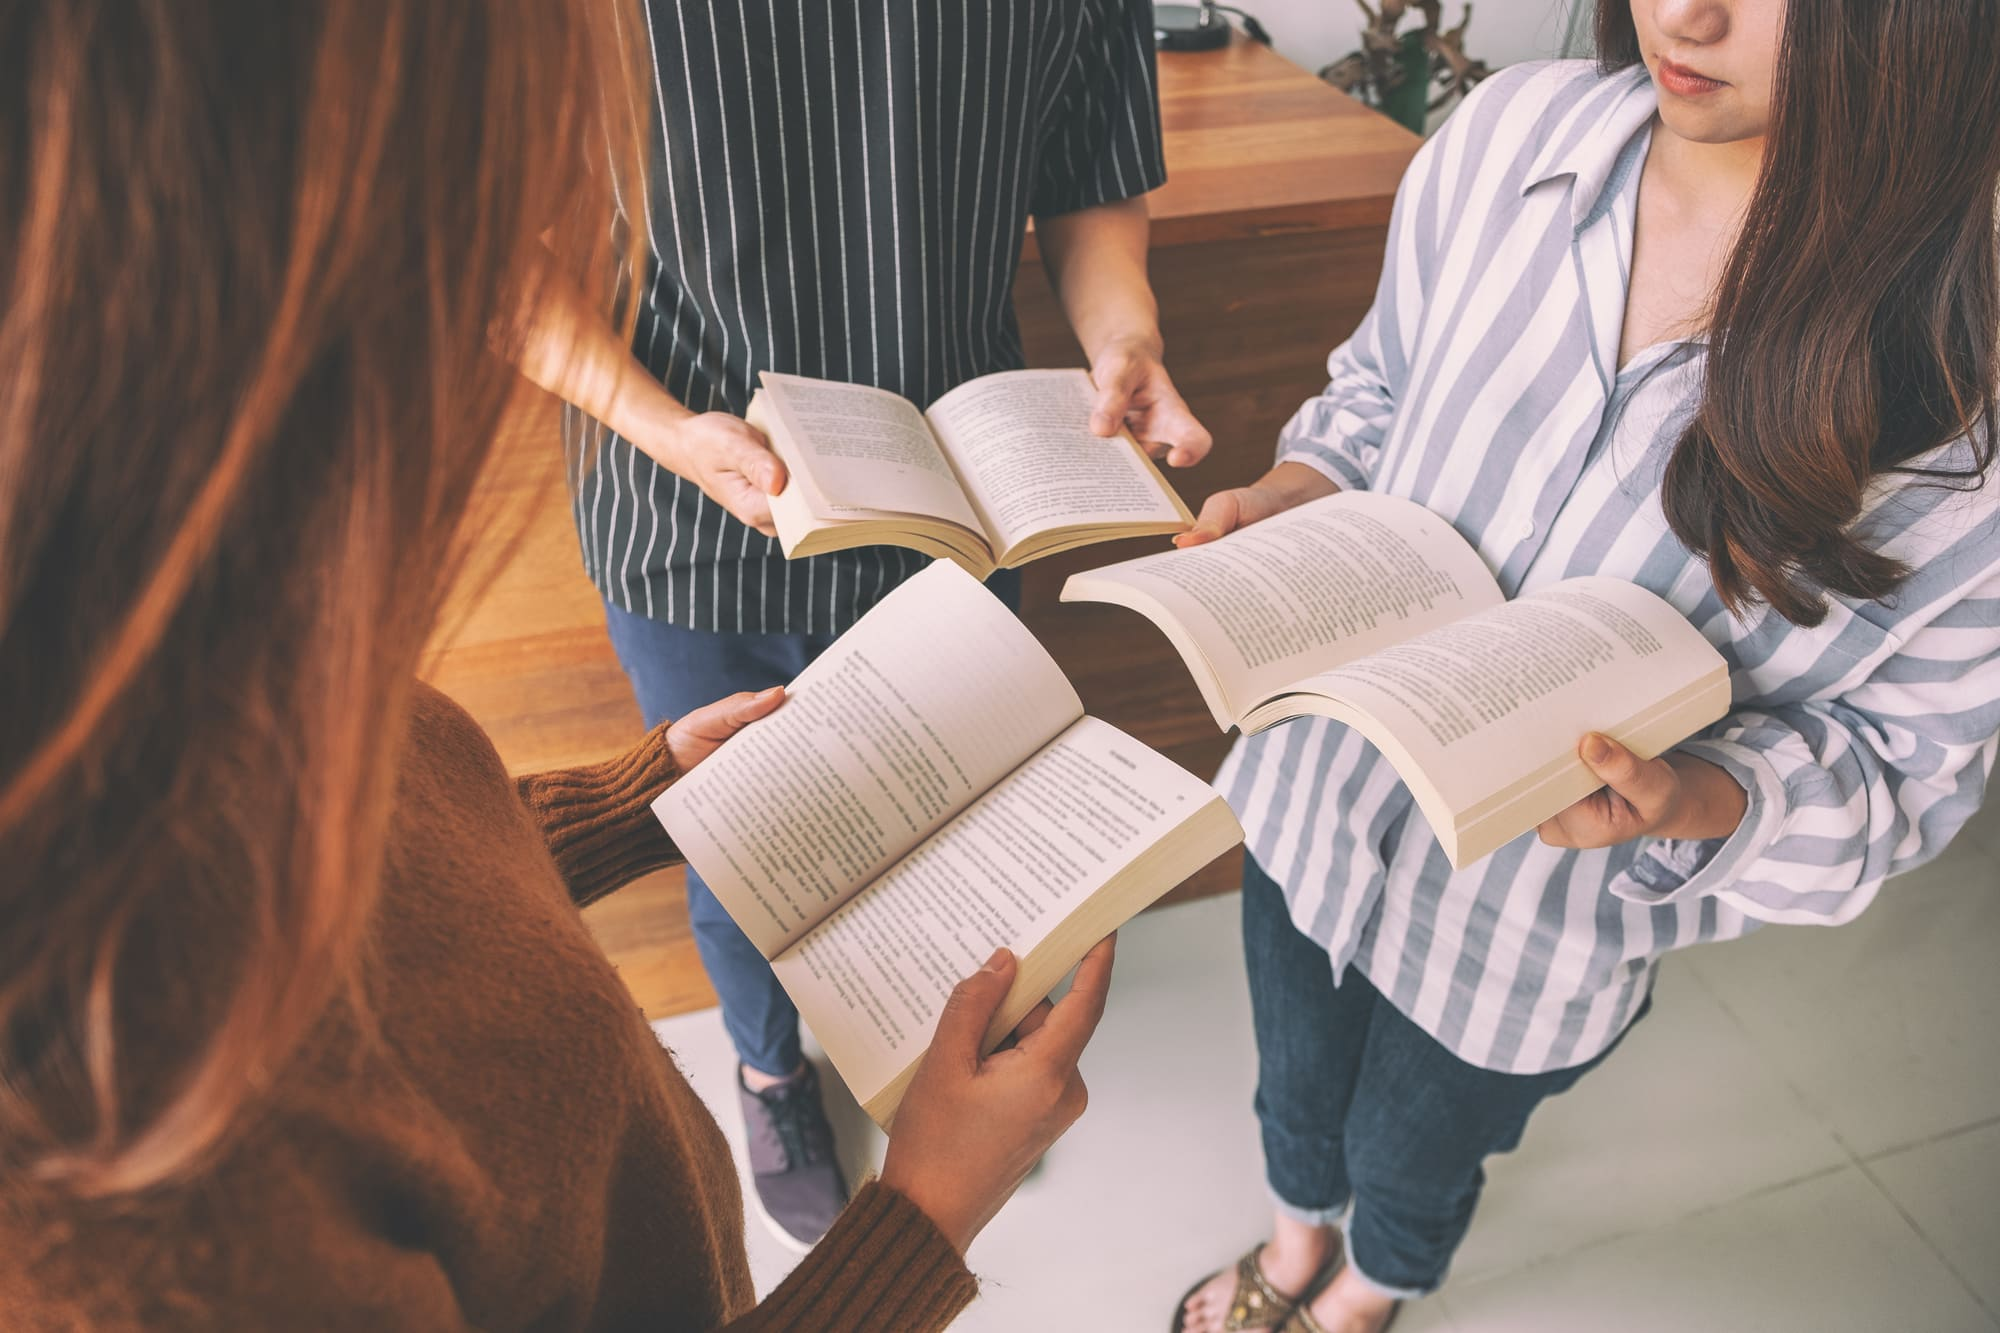 11 [POWERFUL] Bible Verses About Sharing Your Faith